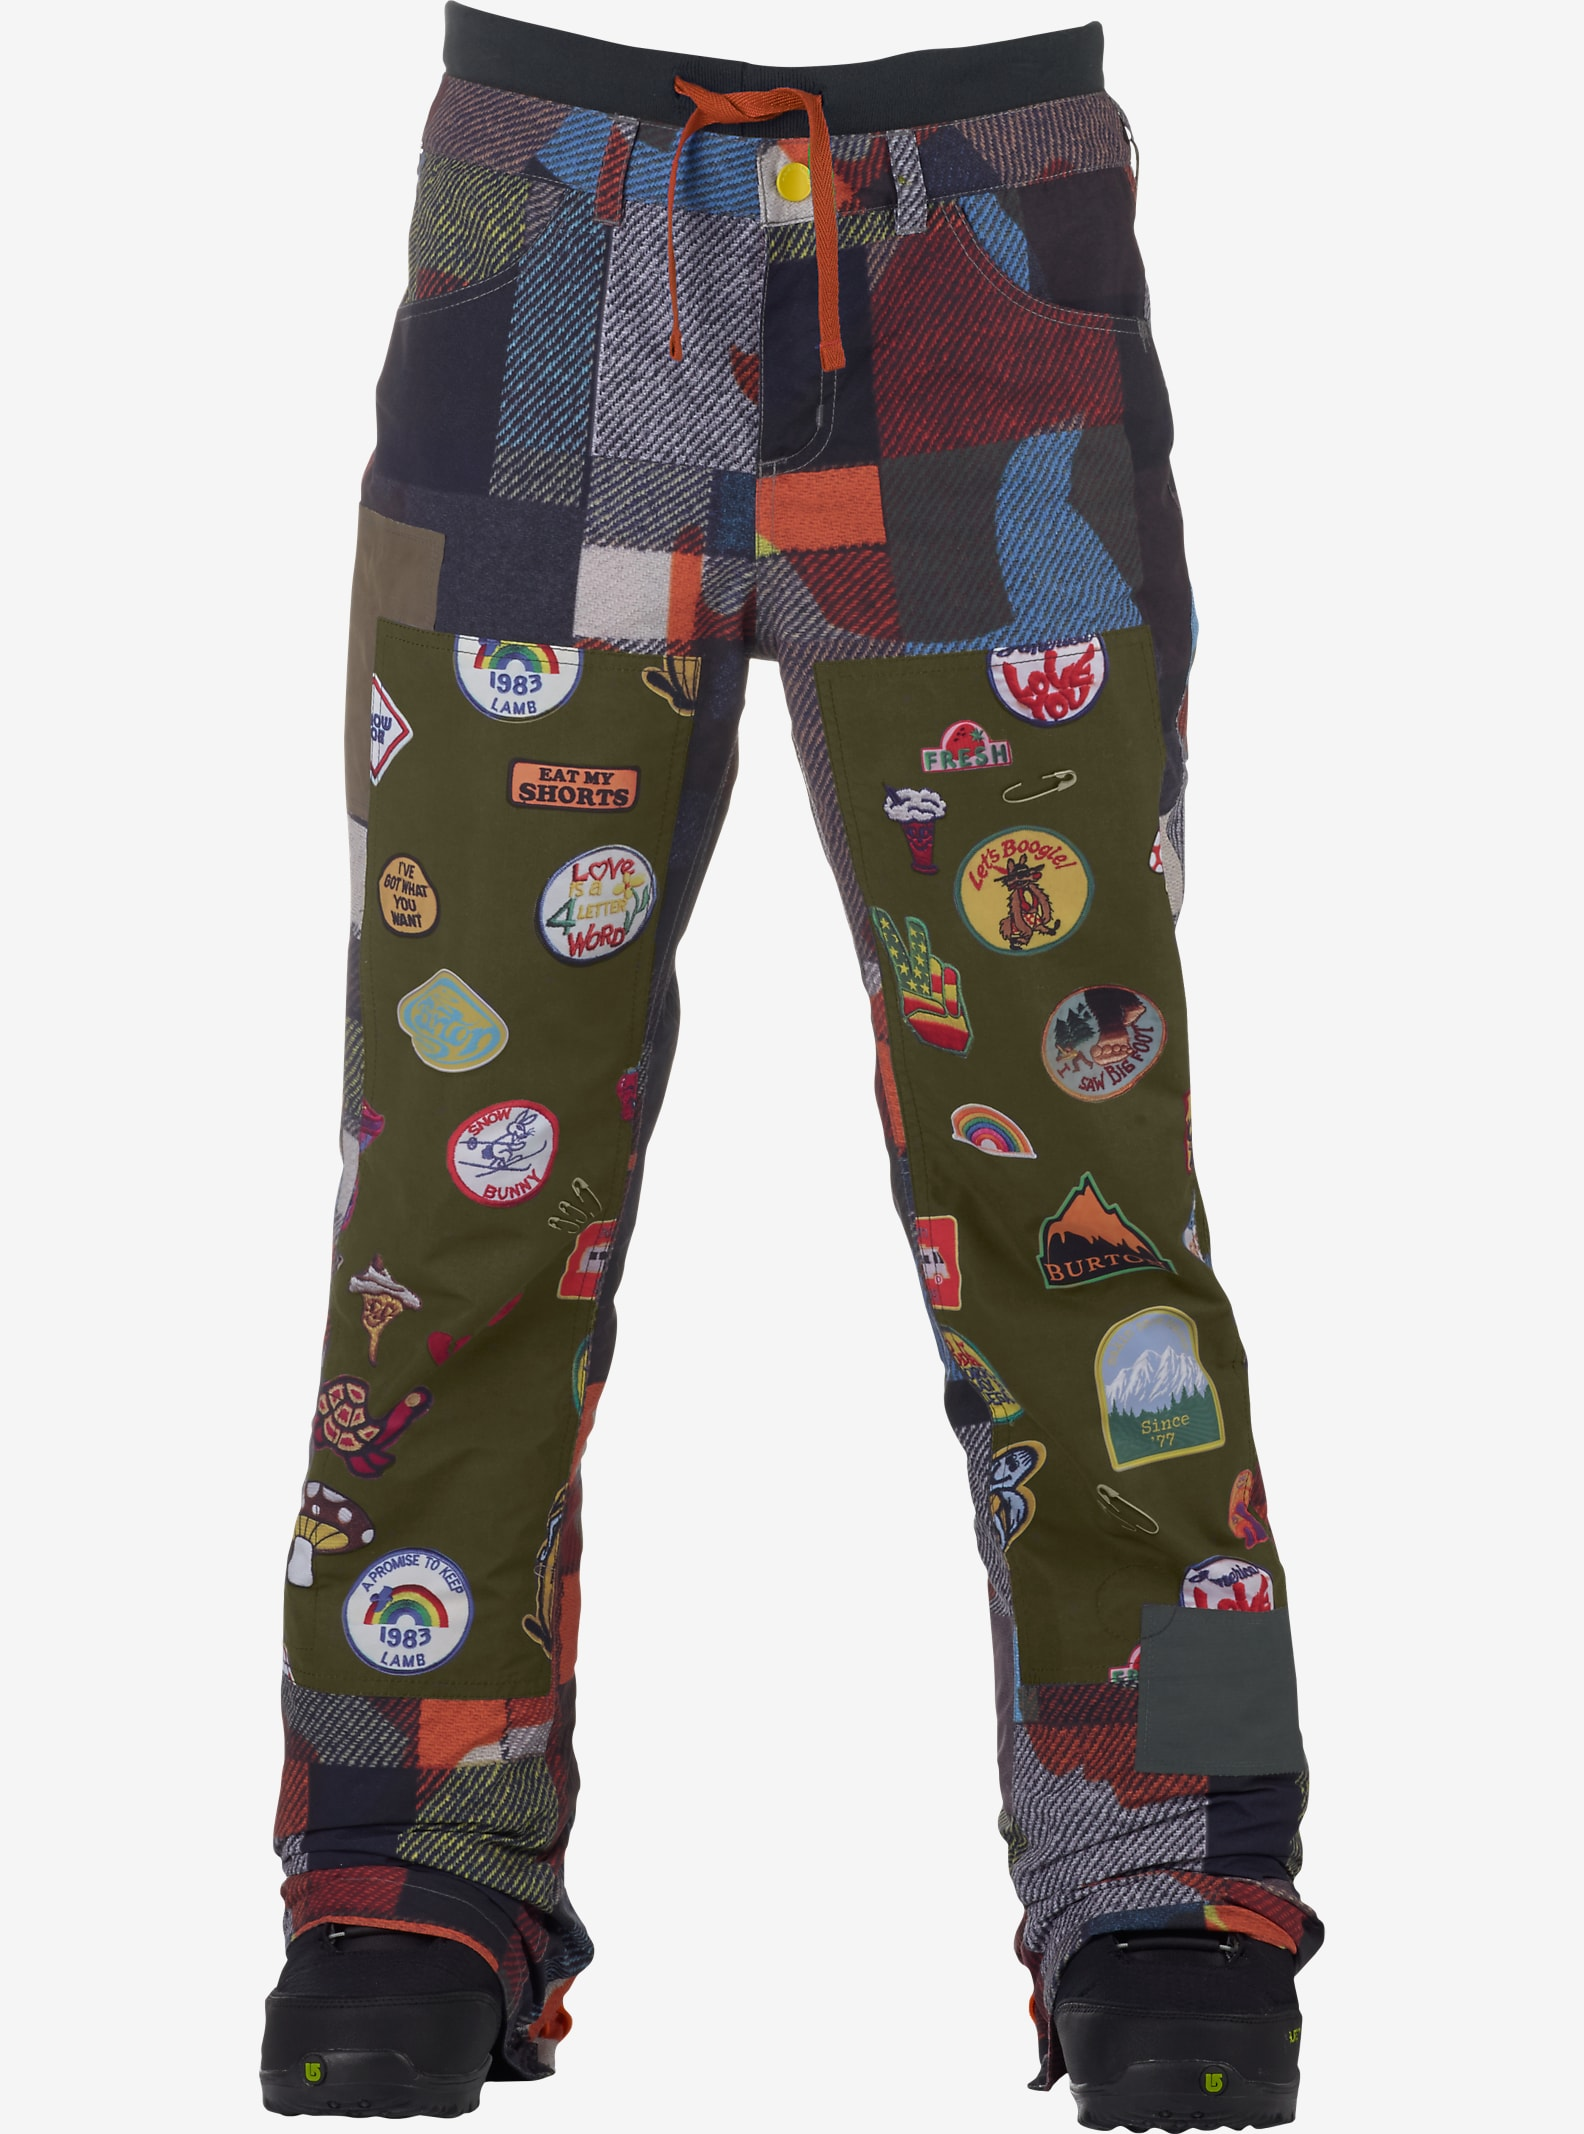 L.A.M.B. x Burton Buju Cargo Pant shown in Camo Plaid